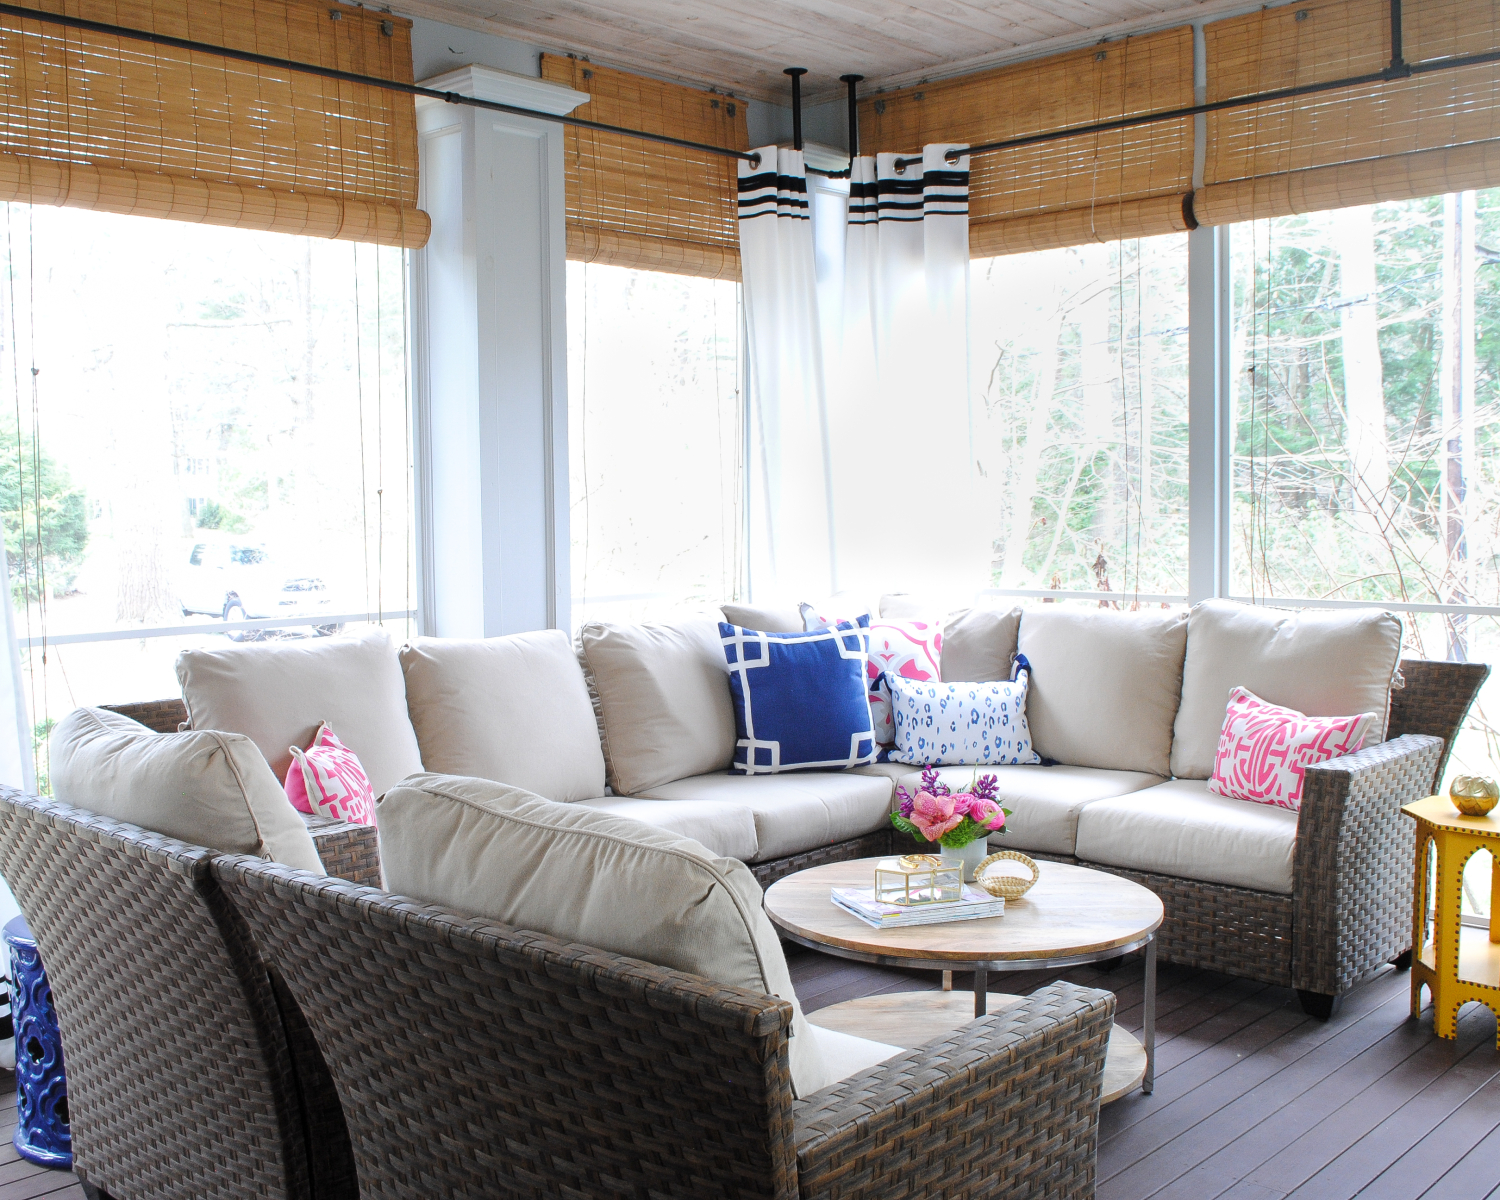 Delightful Screened Porch With Woven Wicker, Round Coffee Table, Navy Blue And Pink  Accents